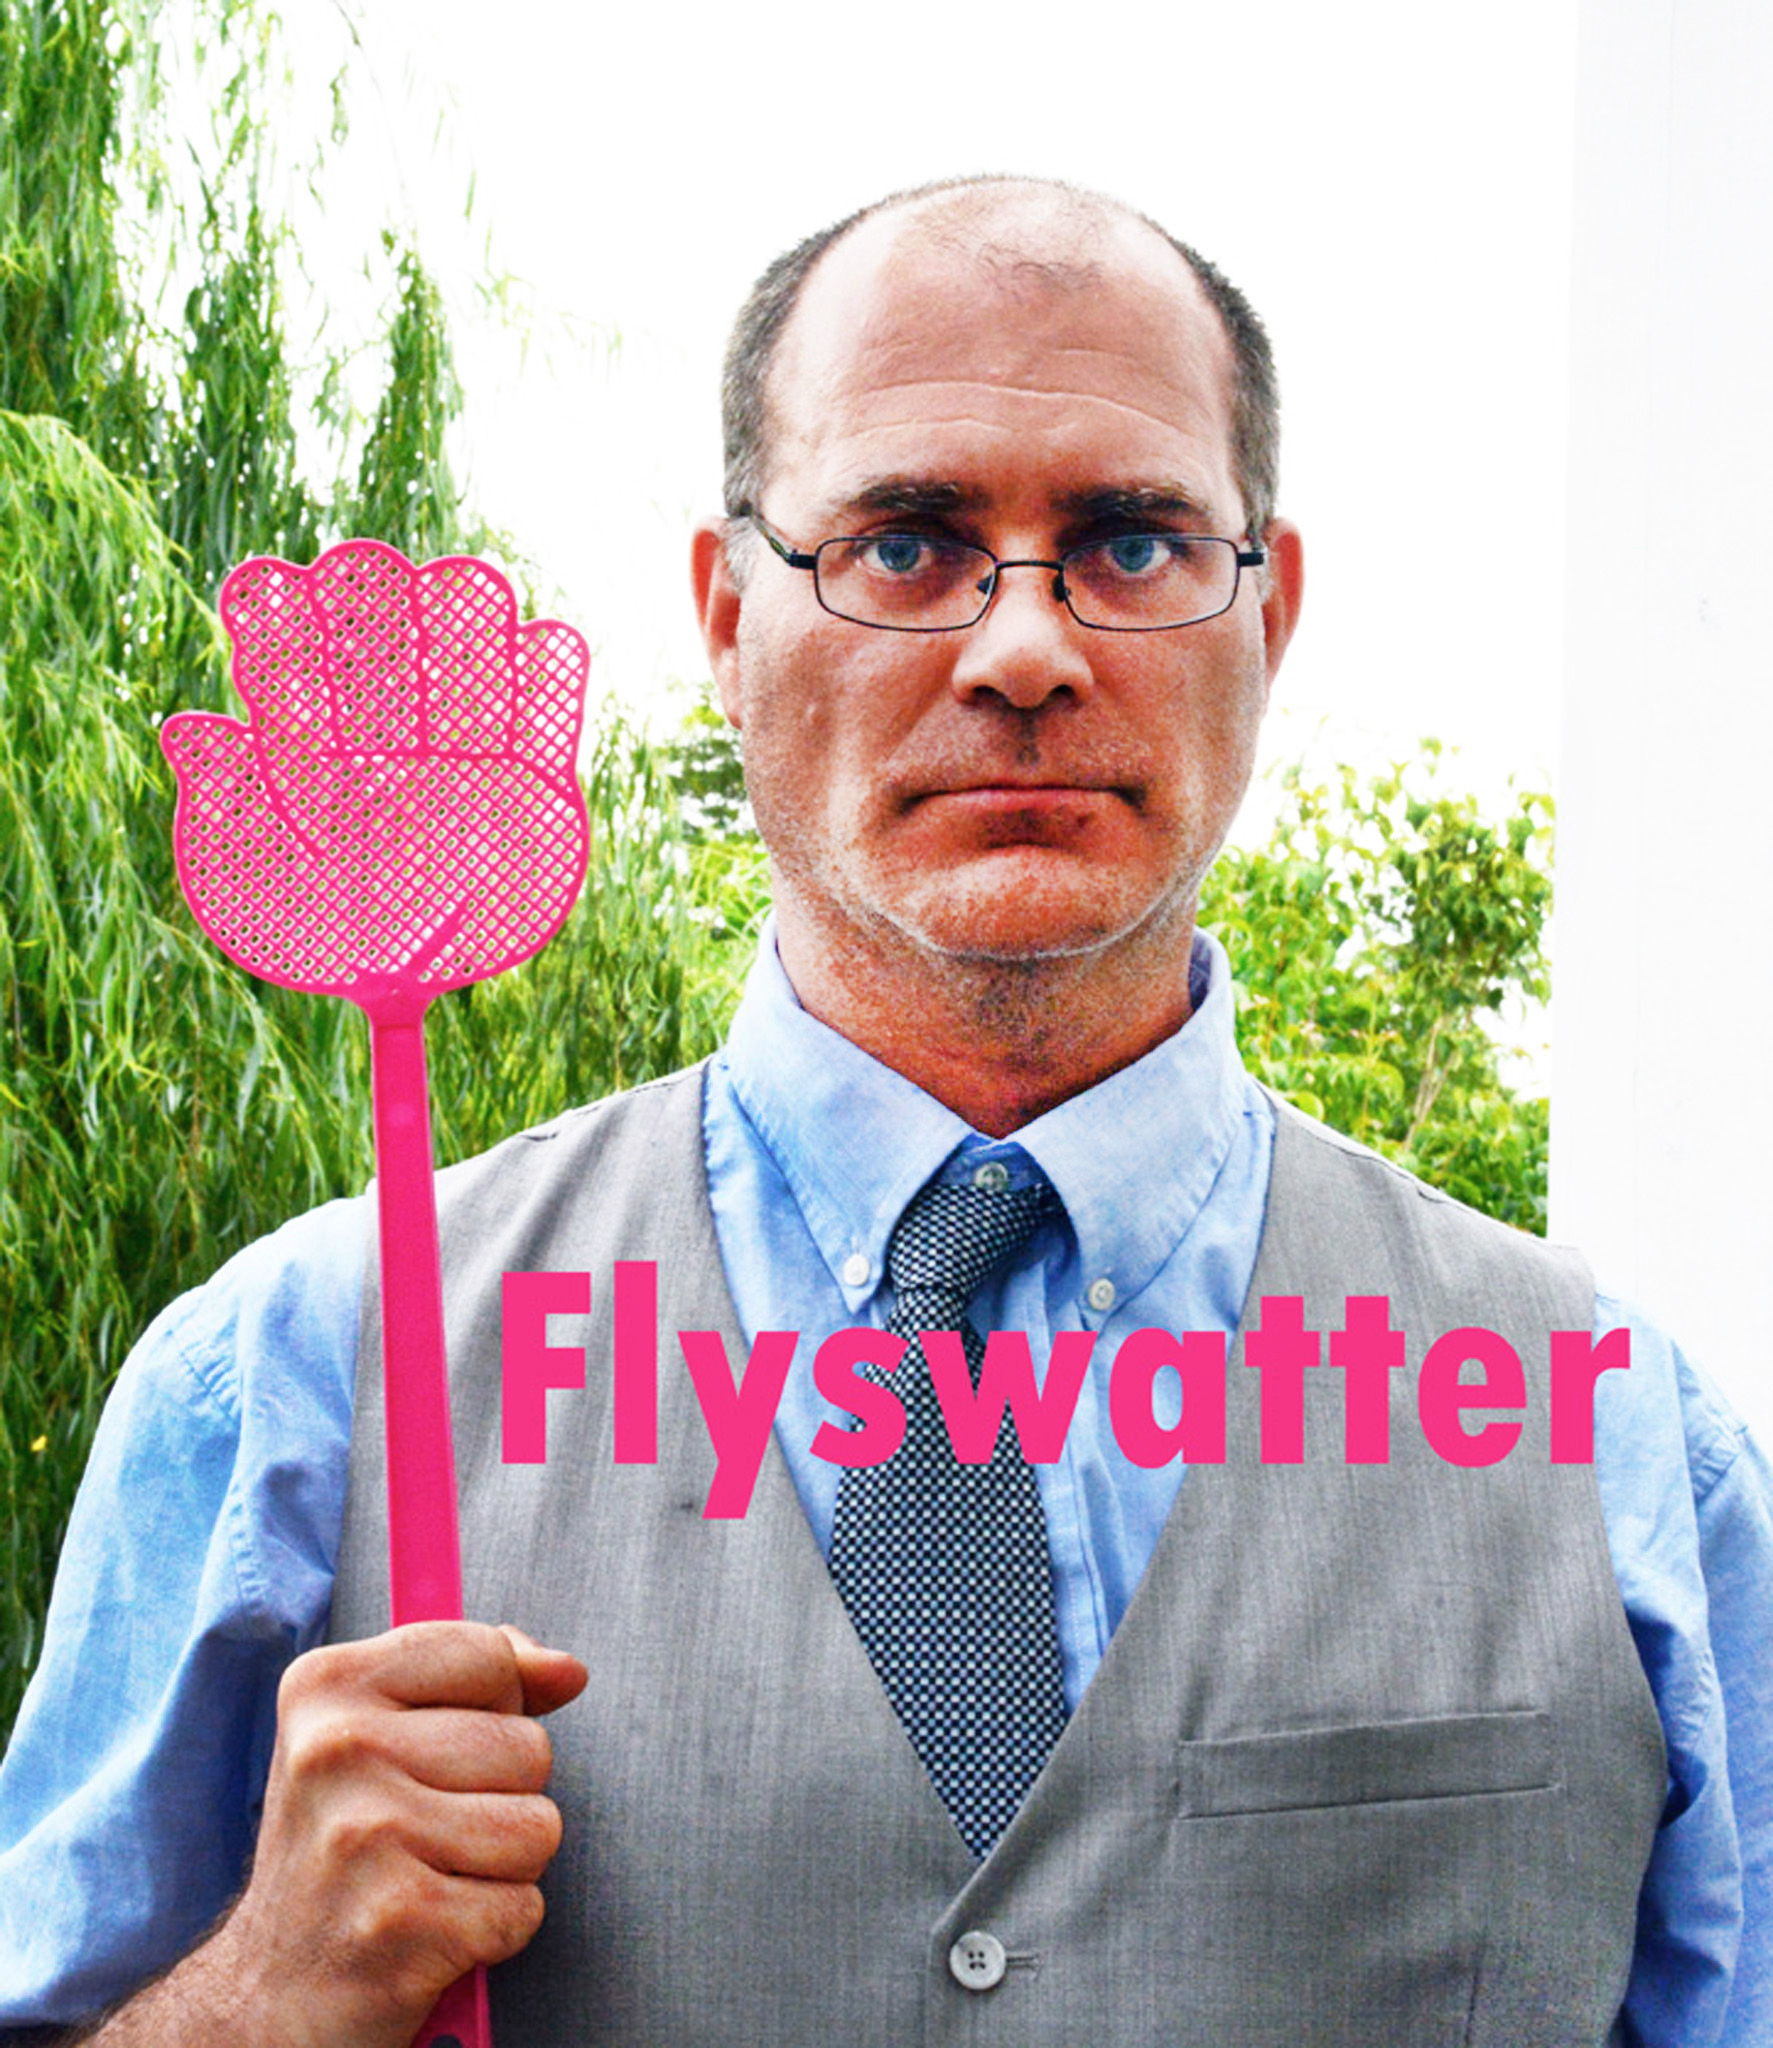 what is with the flyswatter furman?